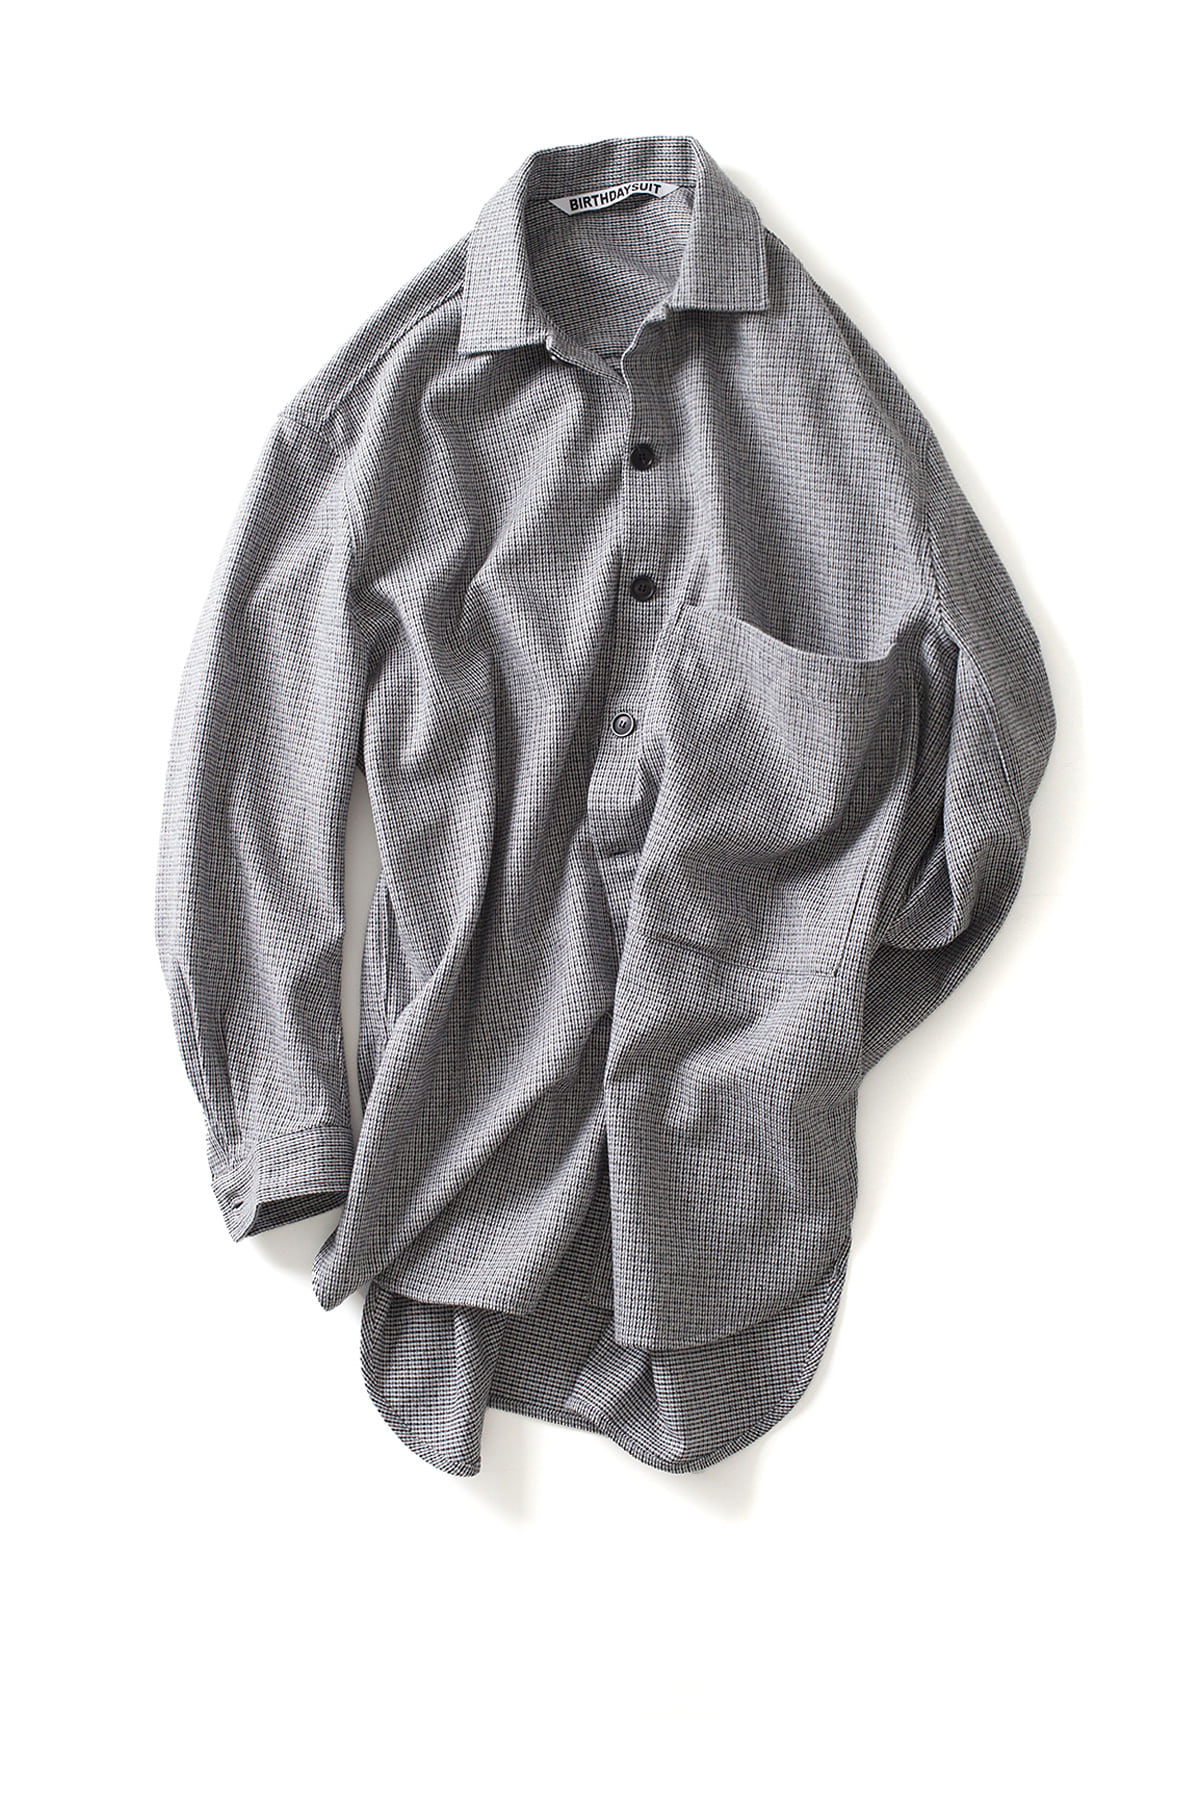 BIRTHDAYSUIT : Oversized Check Shirt Coat (Grey)